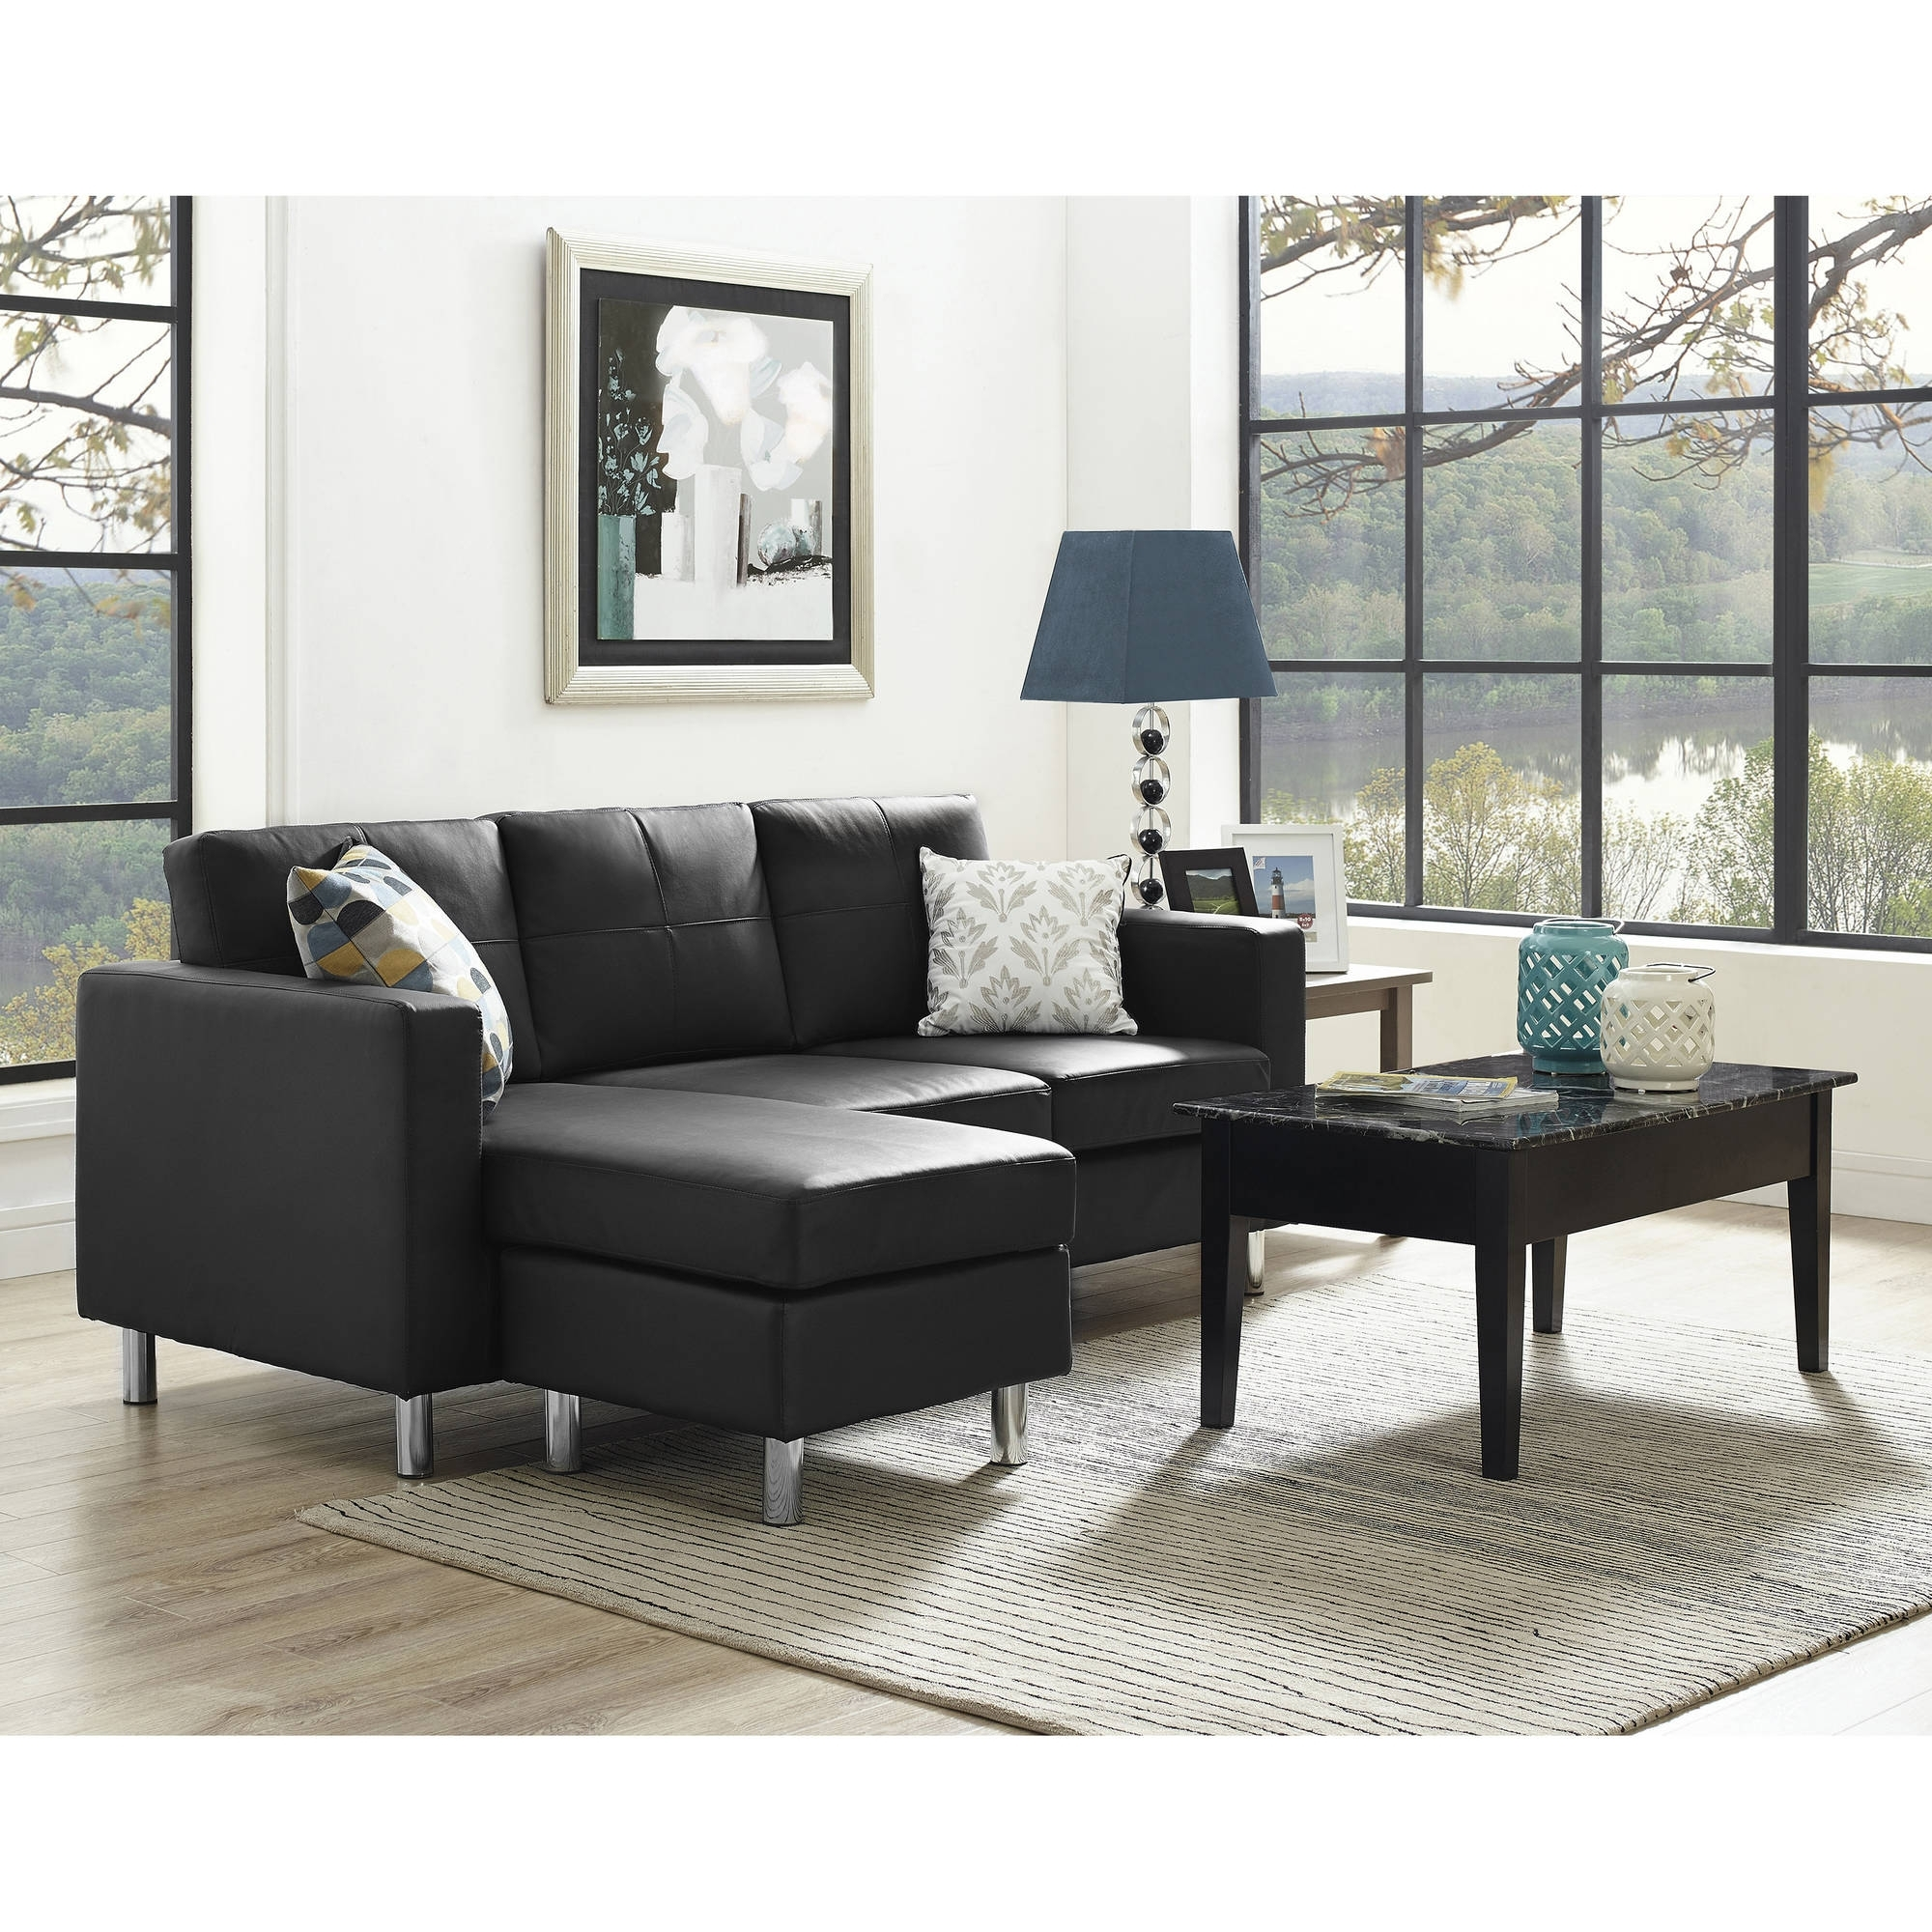 Dorel Living Small Spaces Configurable Sectional Sofa, Multiple for Sectional Sofas For Small Places (Image 7 of 10)